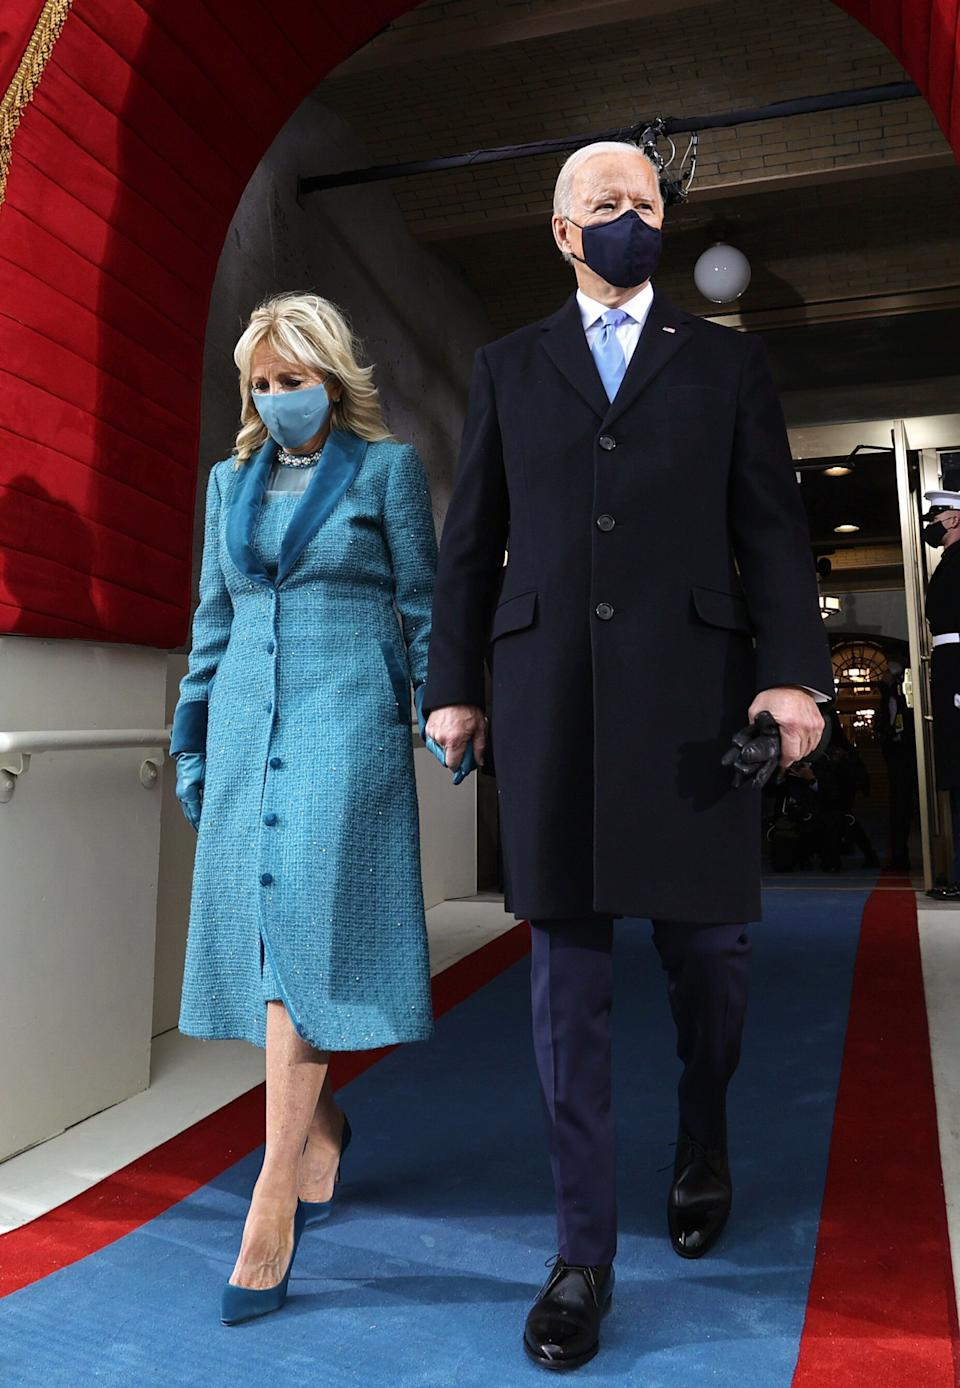 President Joe Biden and incoming first lady Jill Biden arrive for his inauguration as the 46th President at the Capitol on Wednesday. (Photo: JONATHAN ERNST via Getty Images)